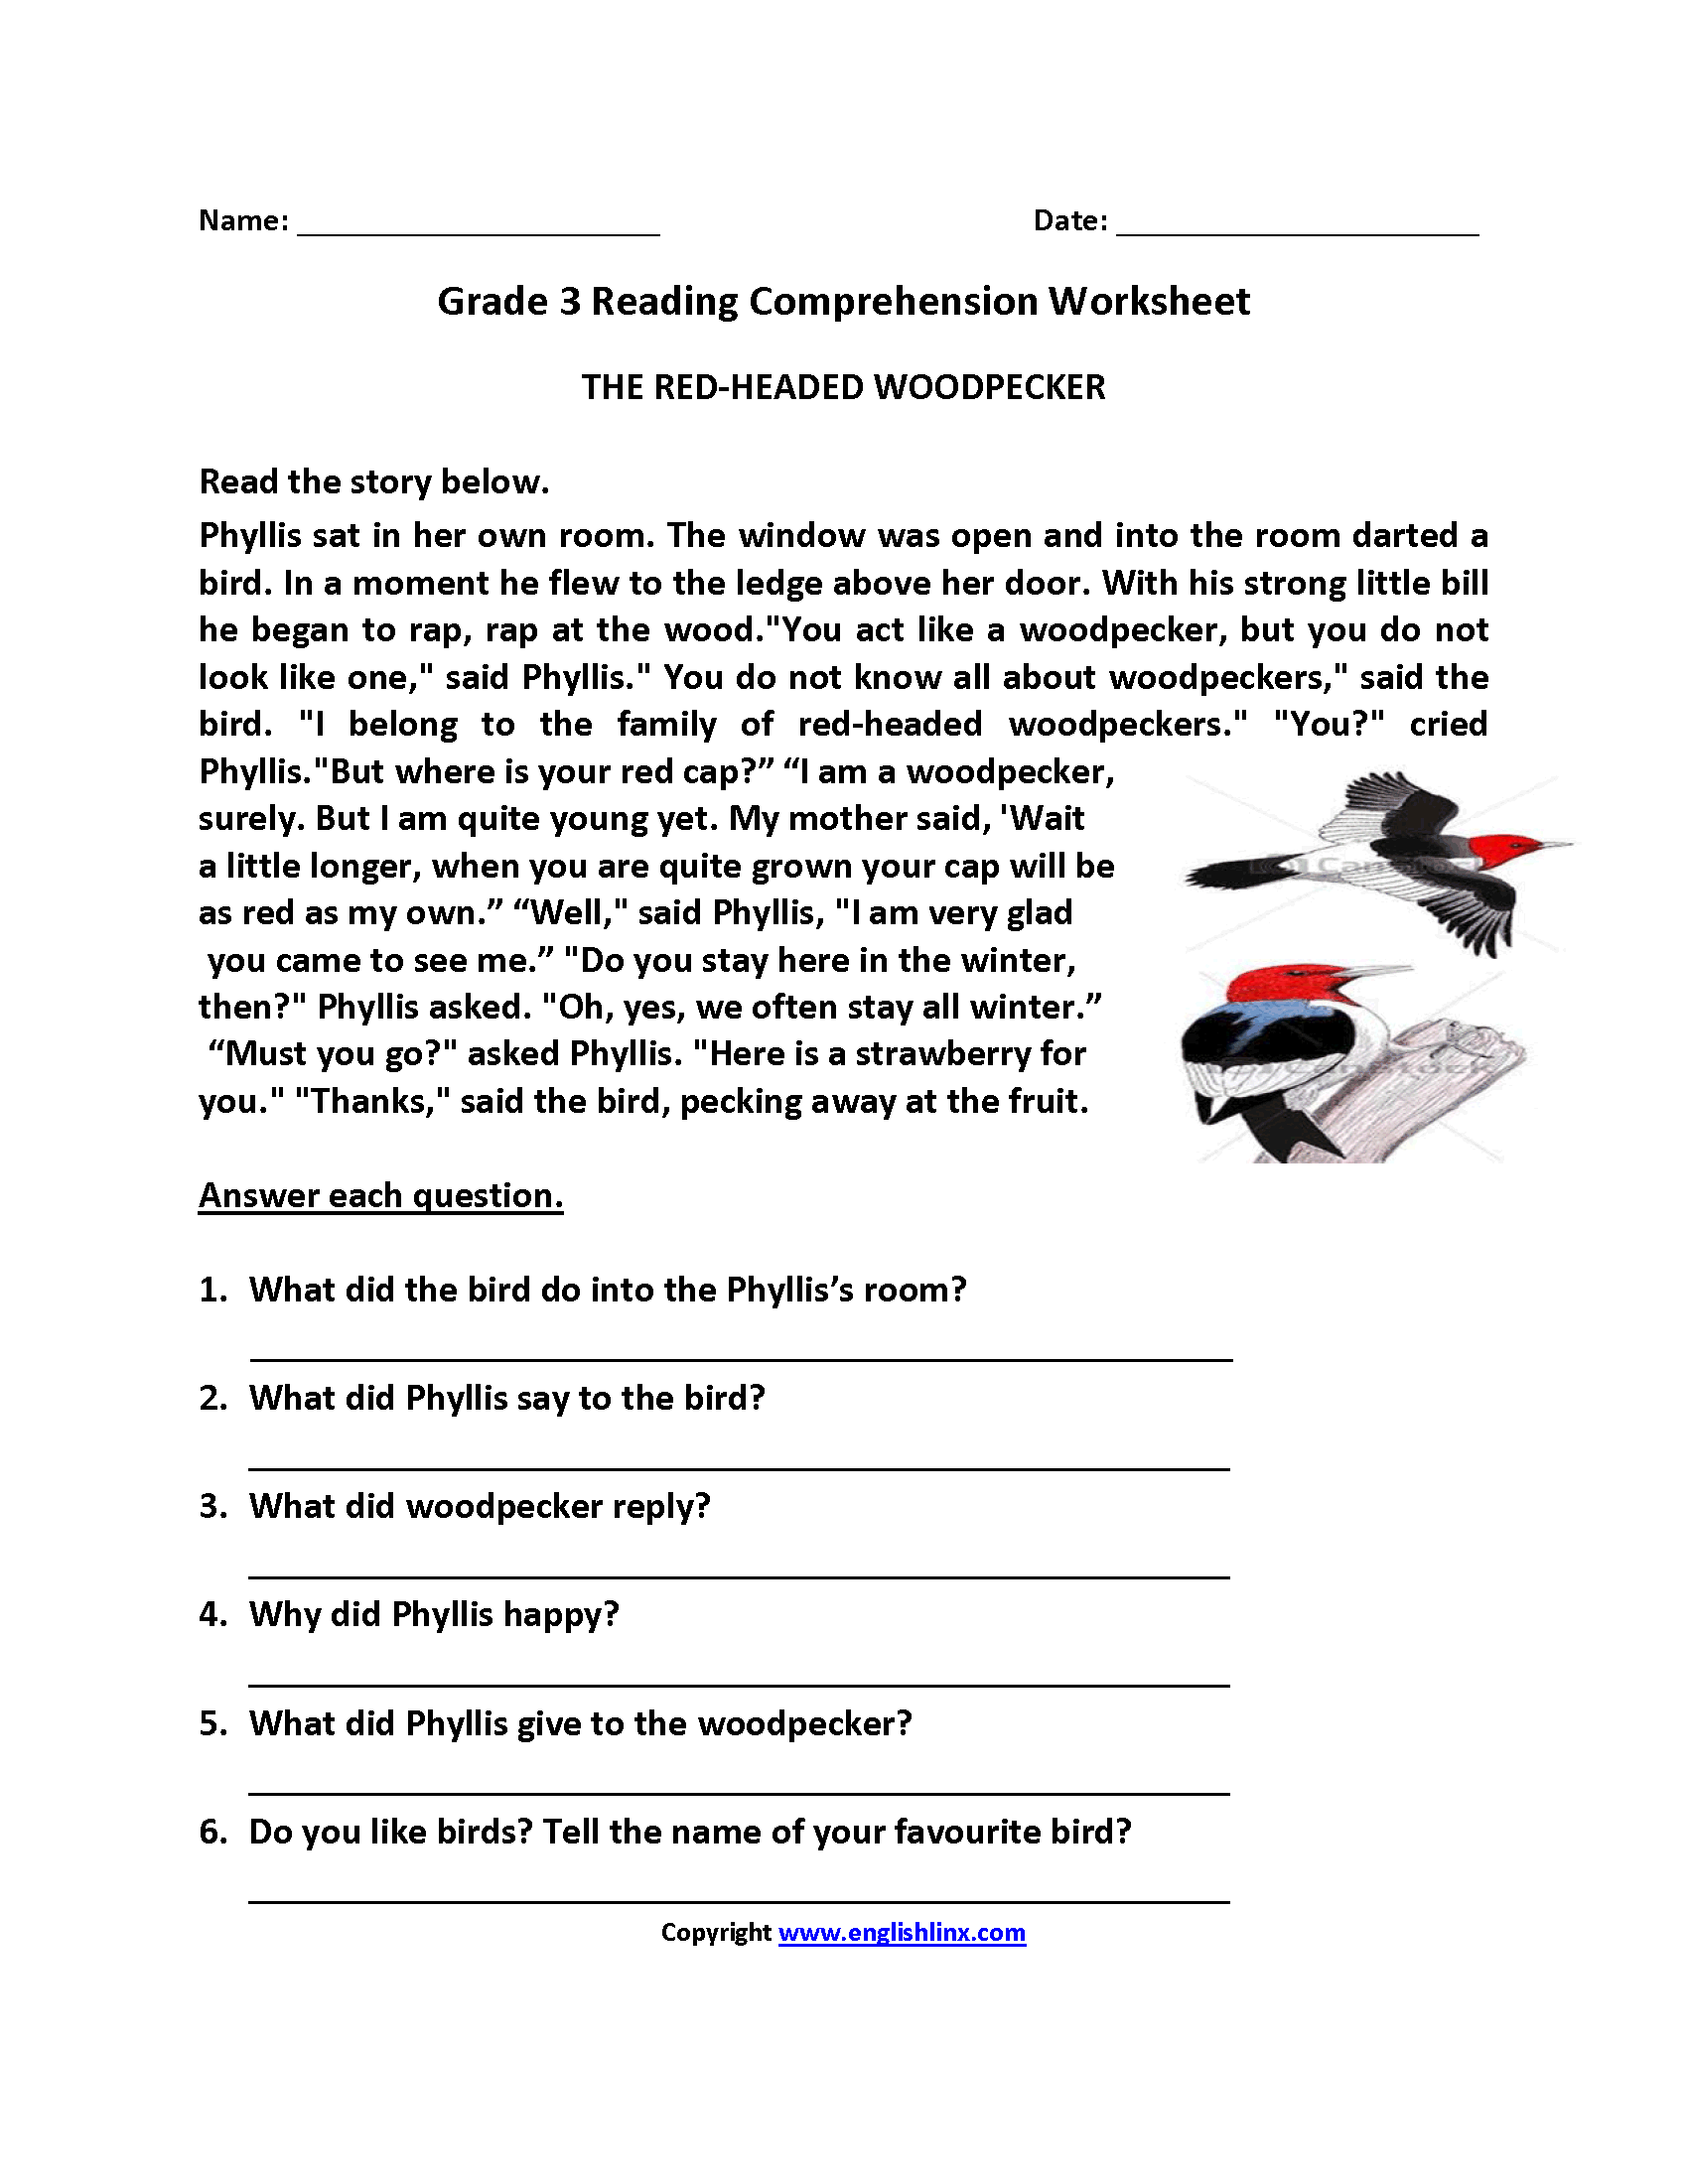 Simple Machines Worksheet For 2nd Grade